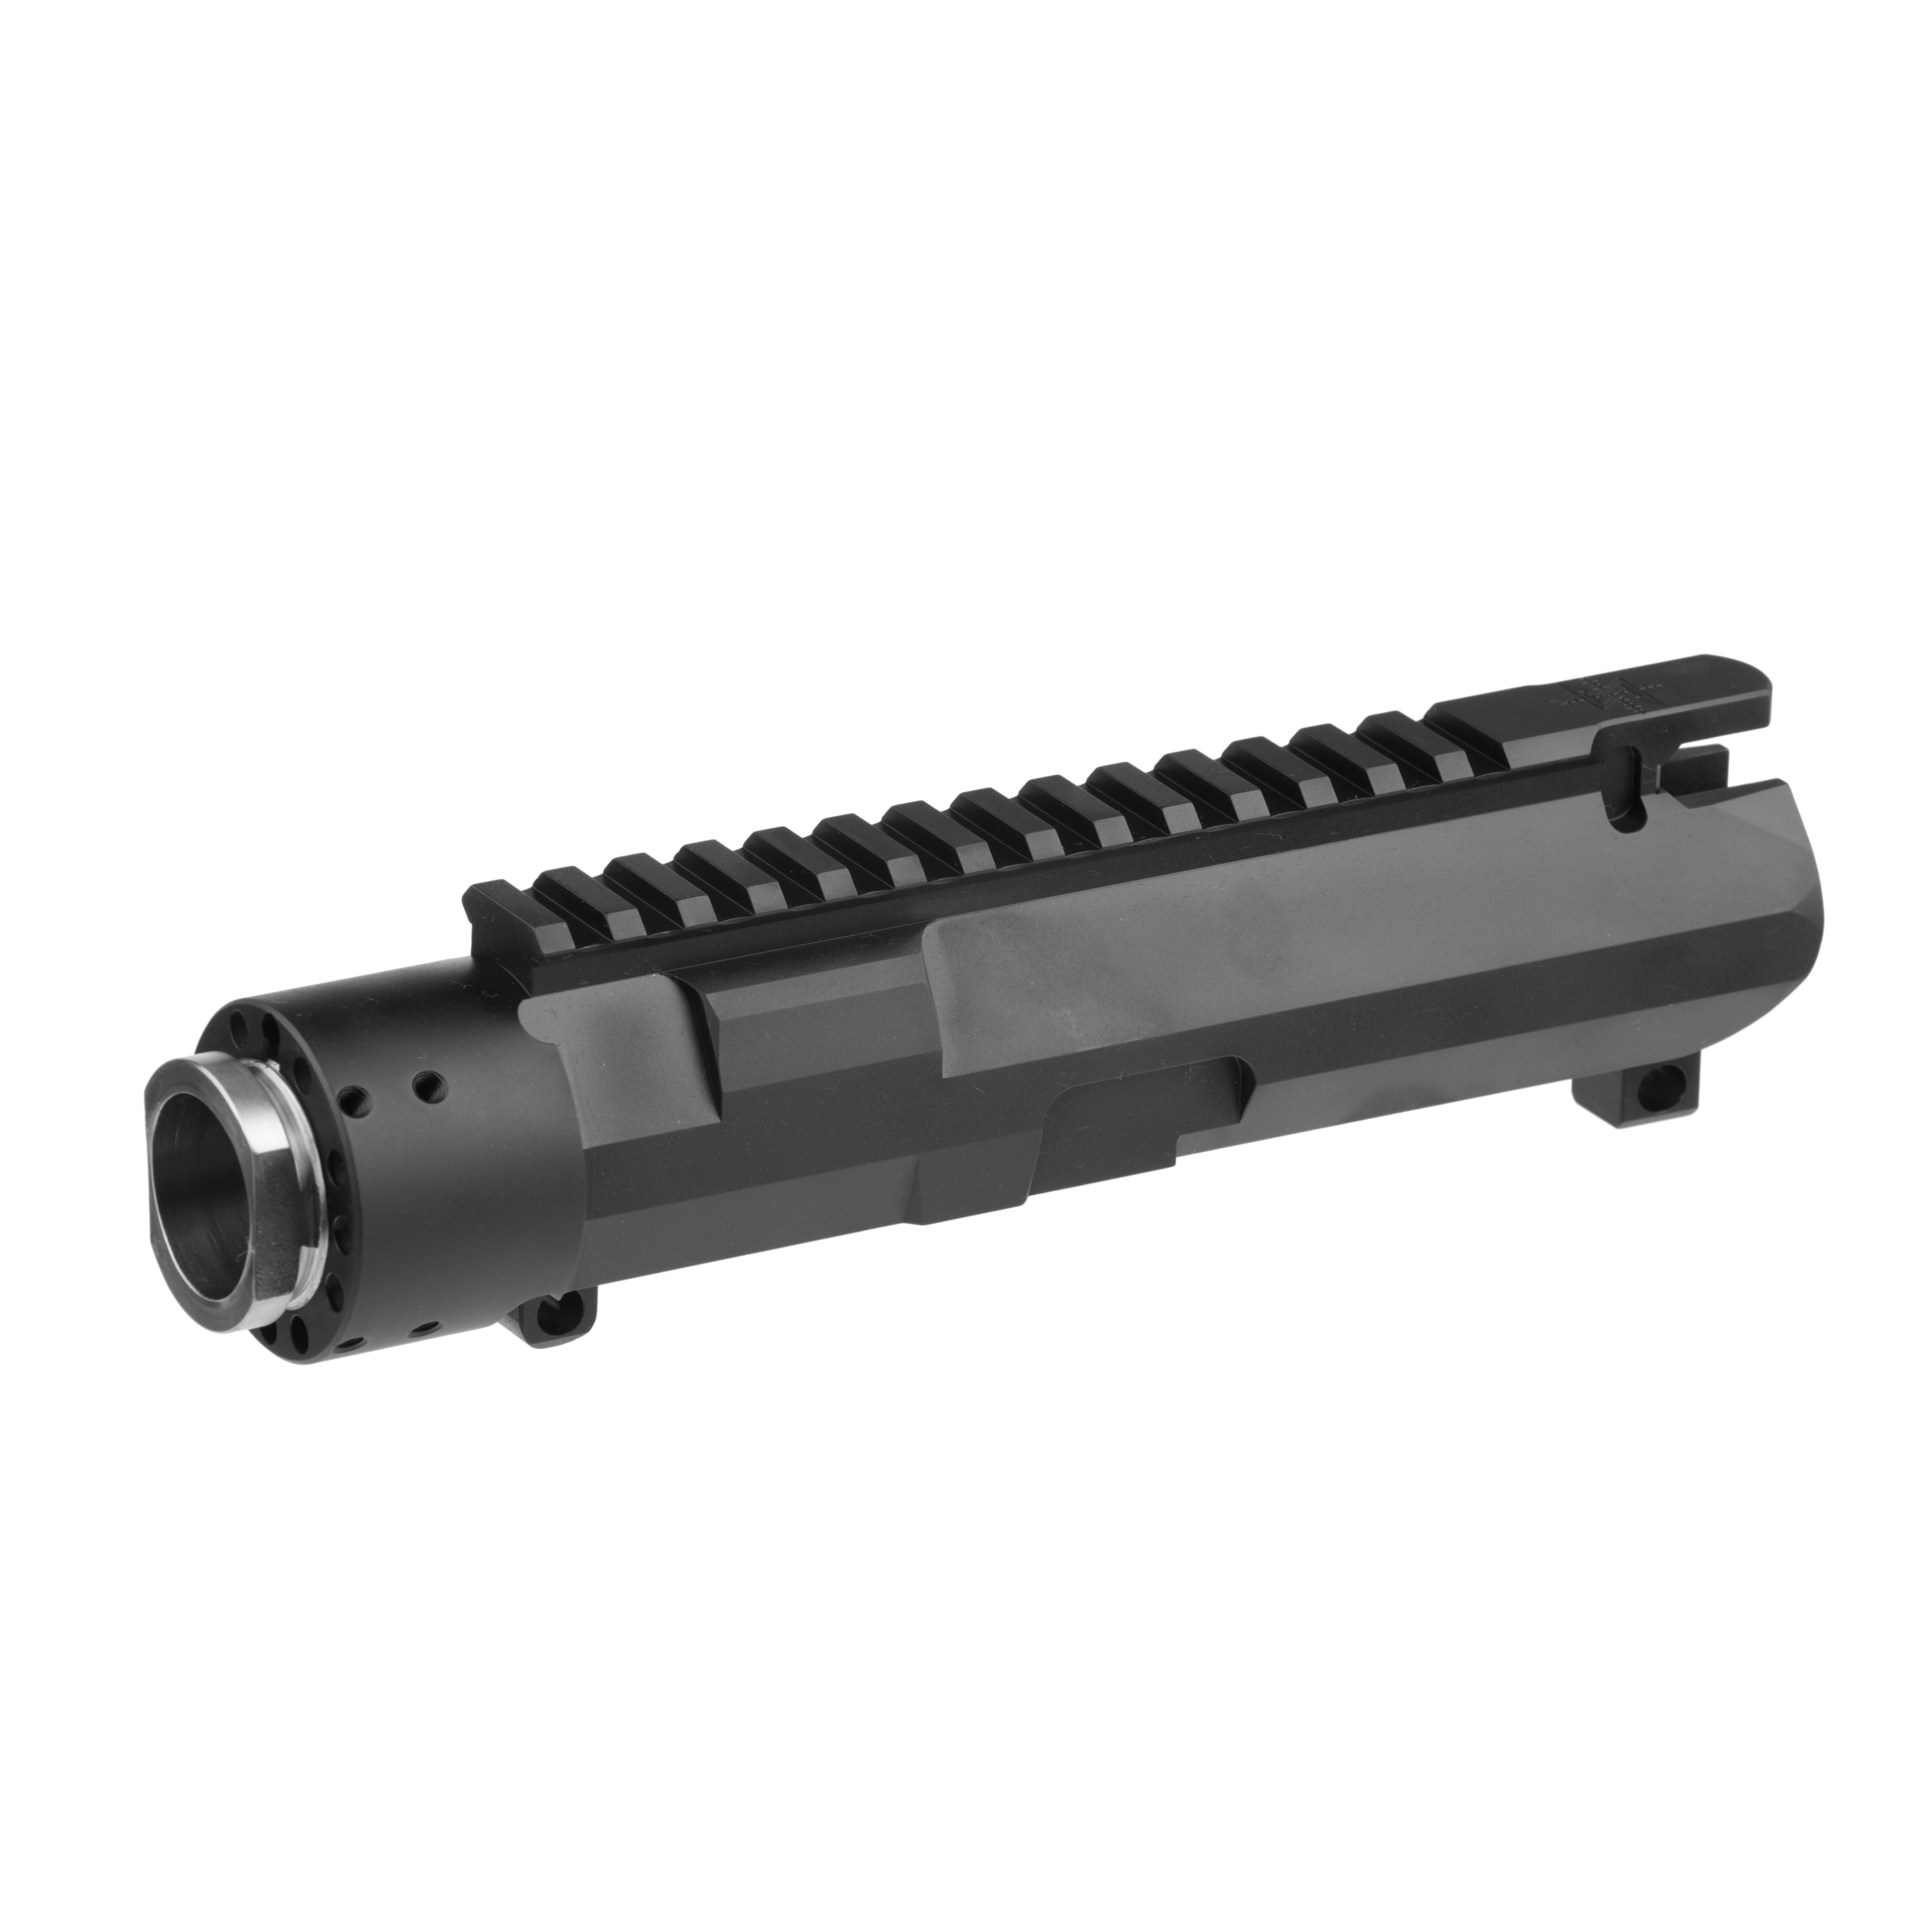 Seekins Precision's Integrated Rail Mounting technology (iRMT) upper